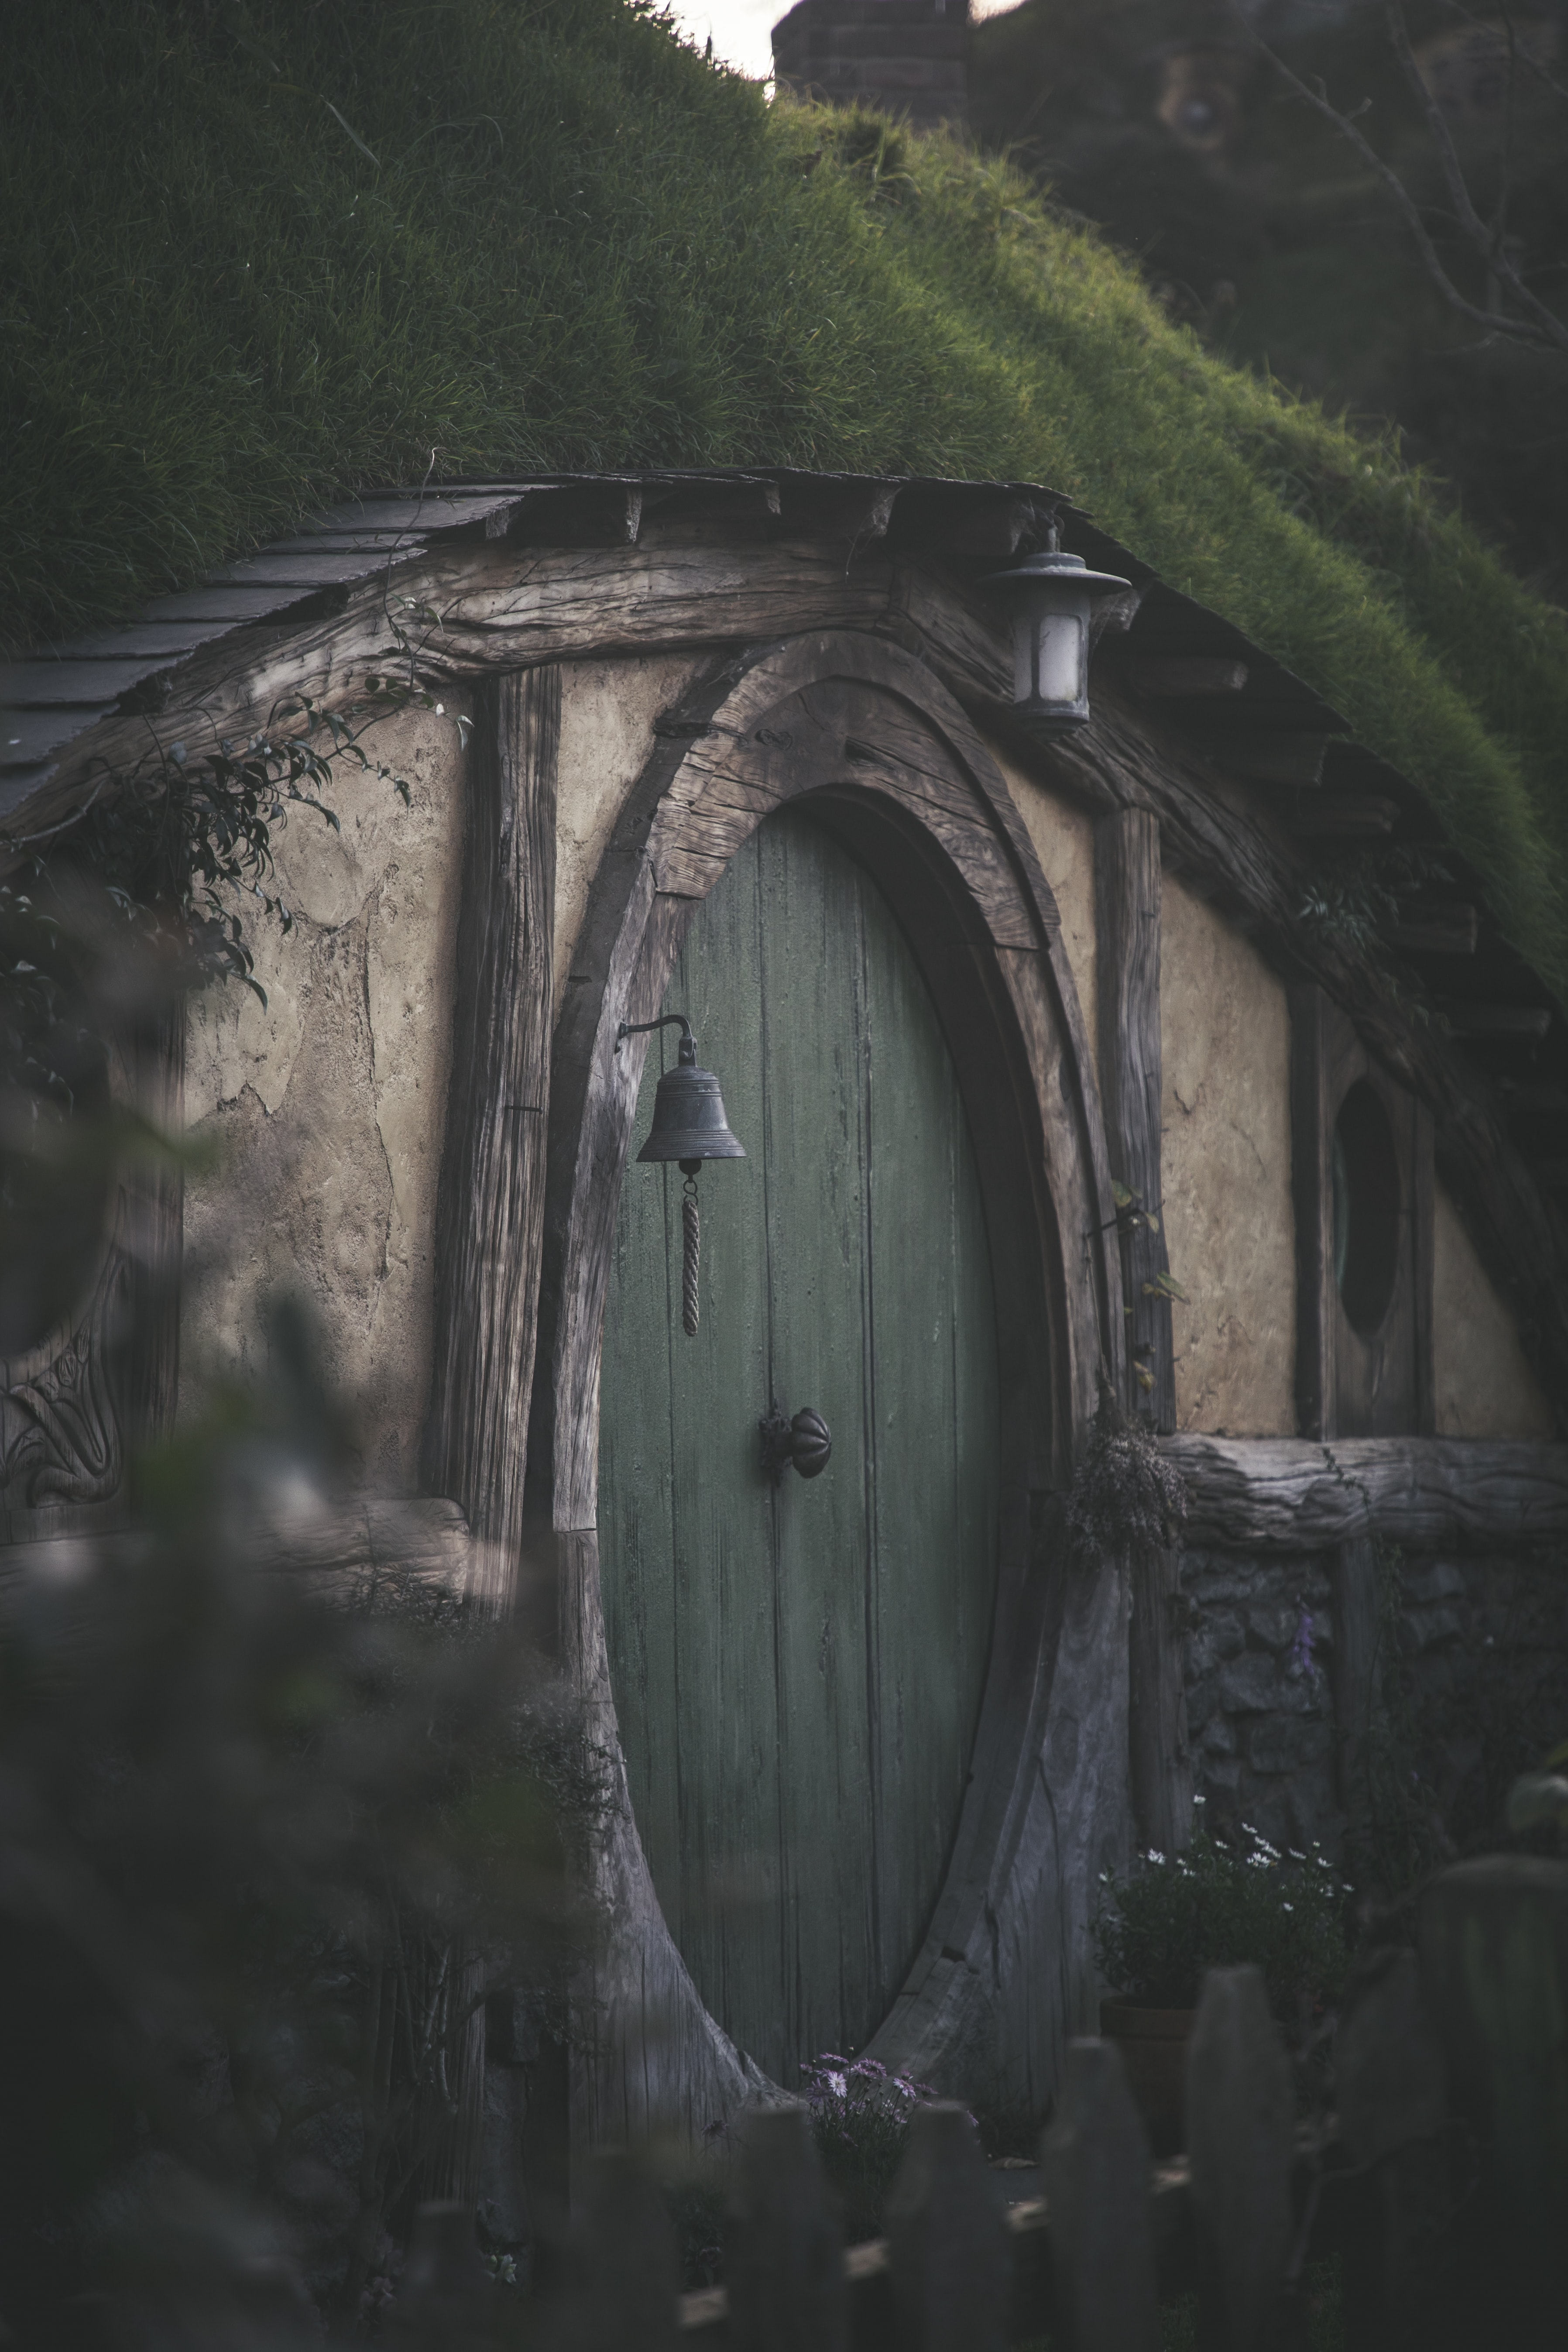 green and wooden tunnel house